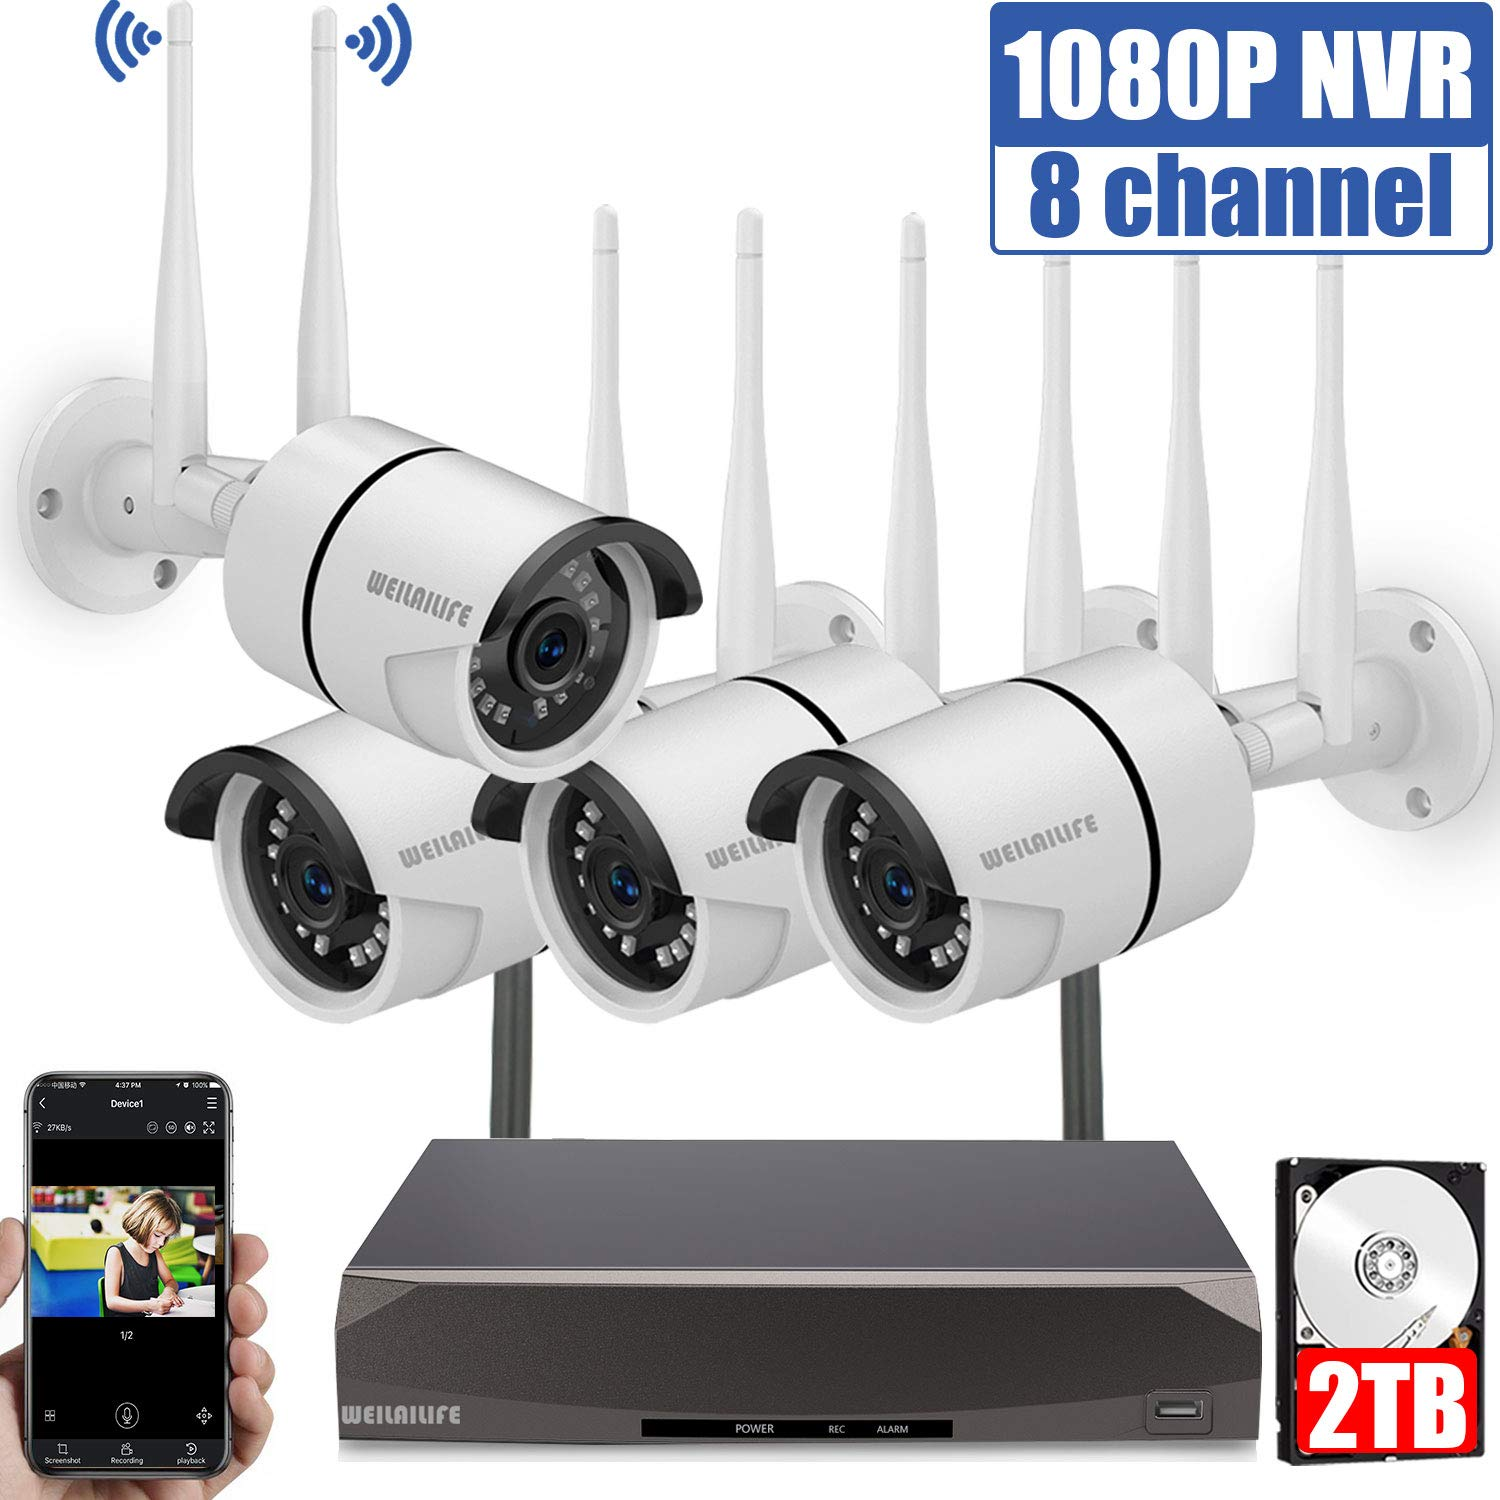 Security Camera System Wireless,8 Channel Home Outdoor Wireless Surveillance Camera System and 4Pcs 1080P WiFi Security Weatherproof IP Camera with Night Vision,Remote View,2TB Hard Drive by WEILAILIFE